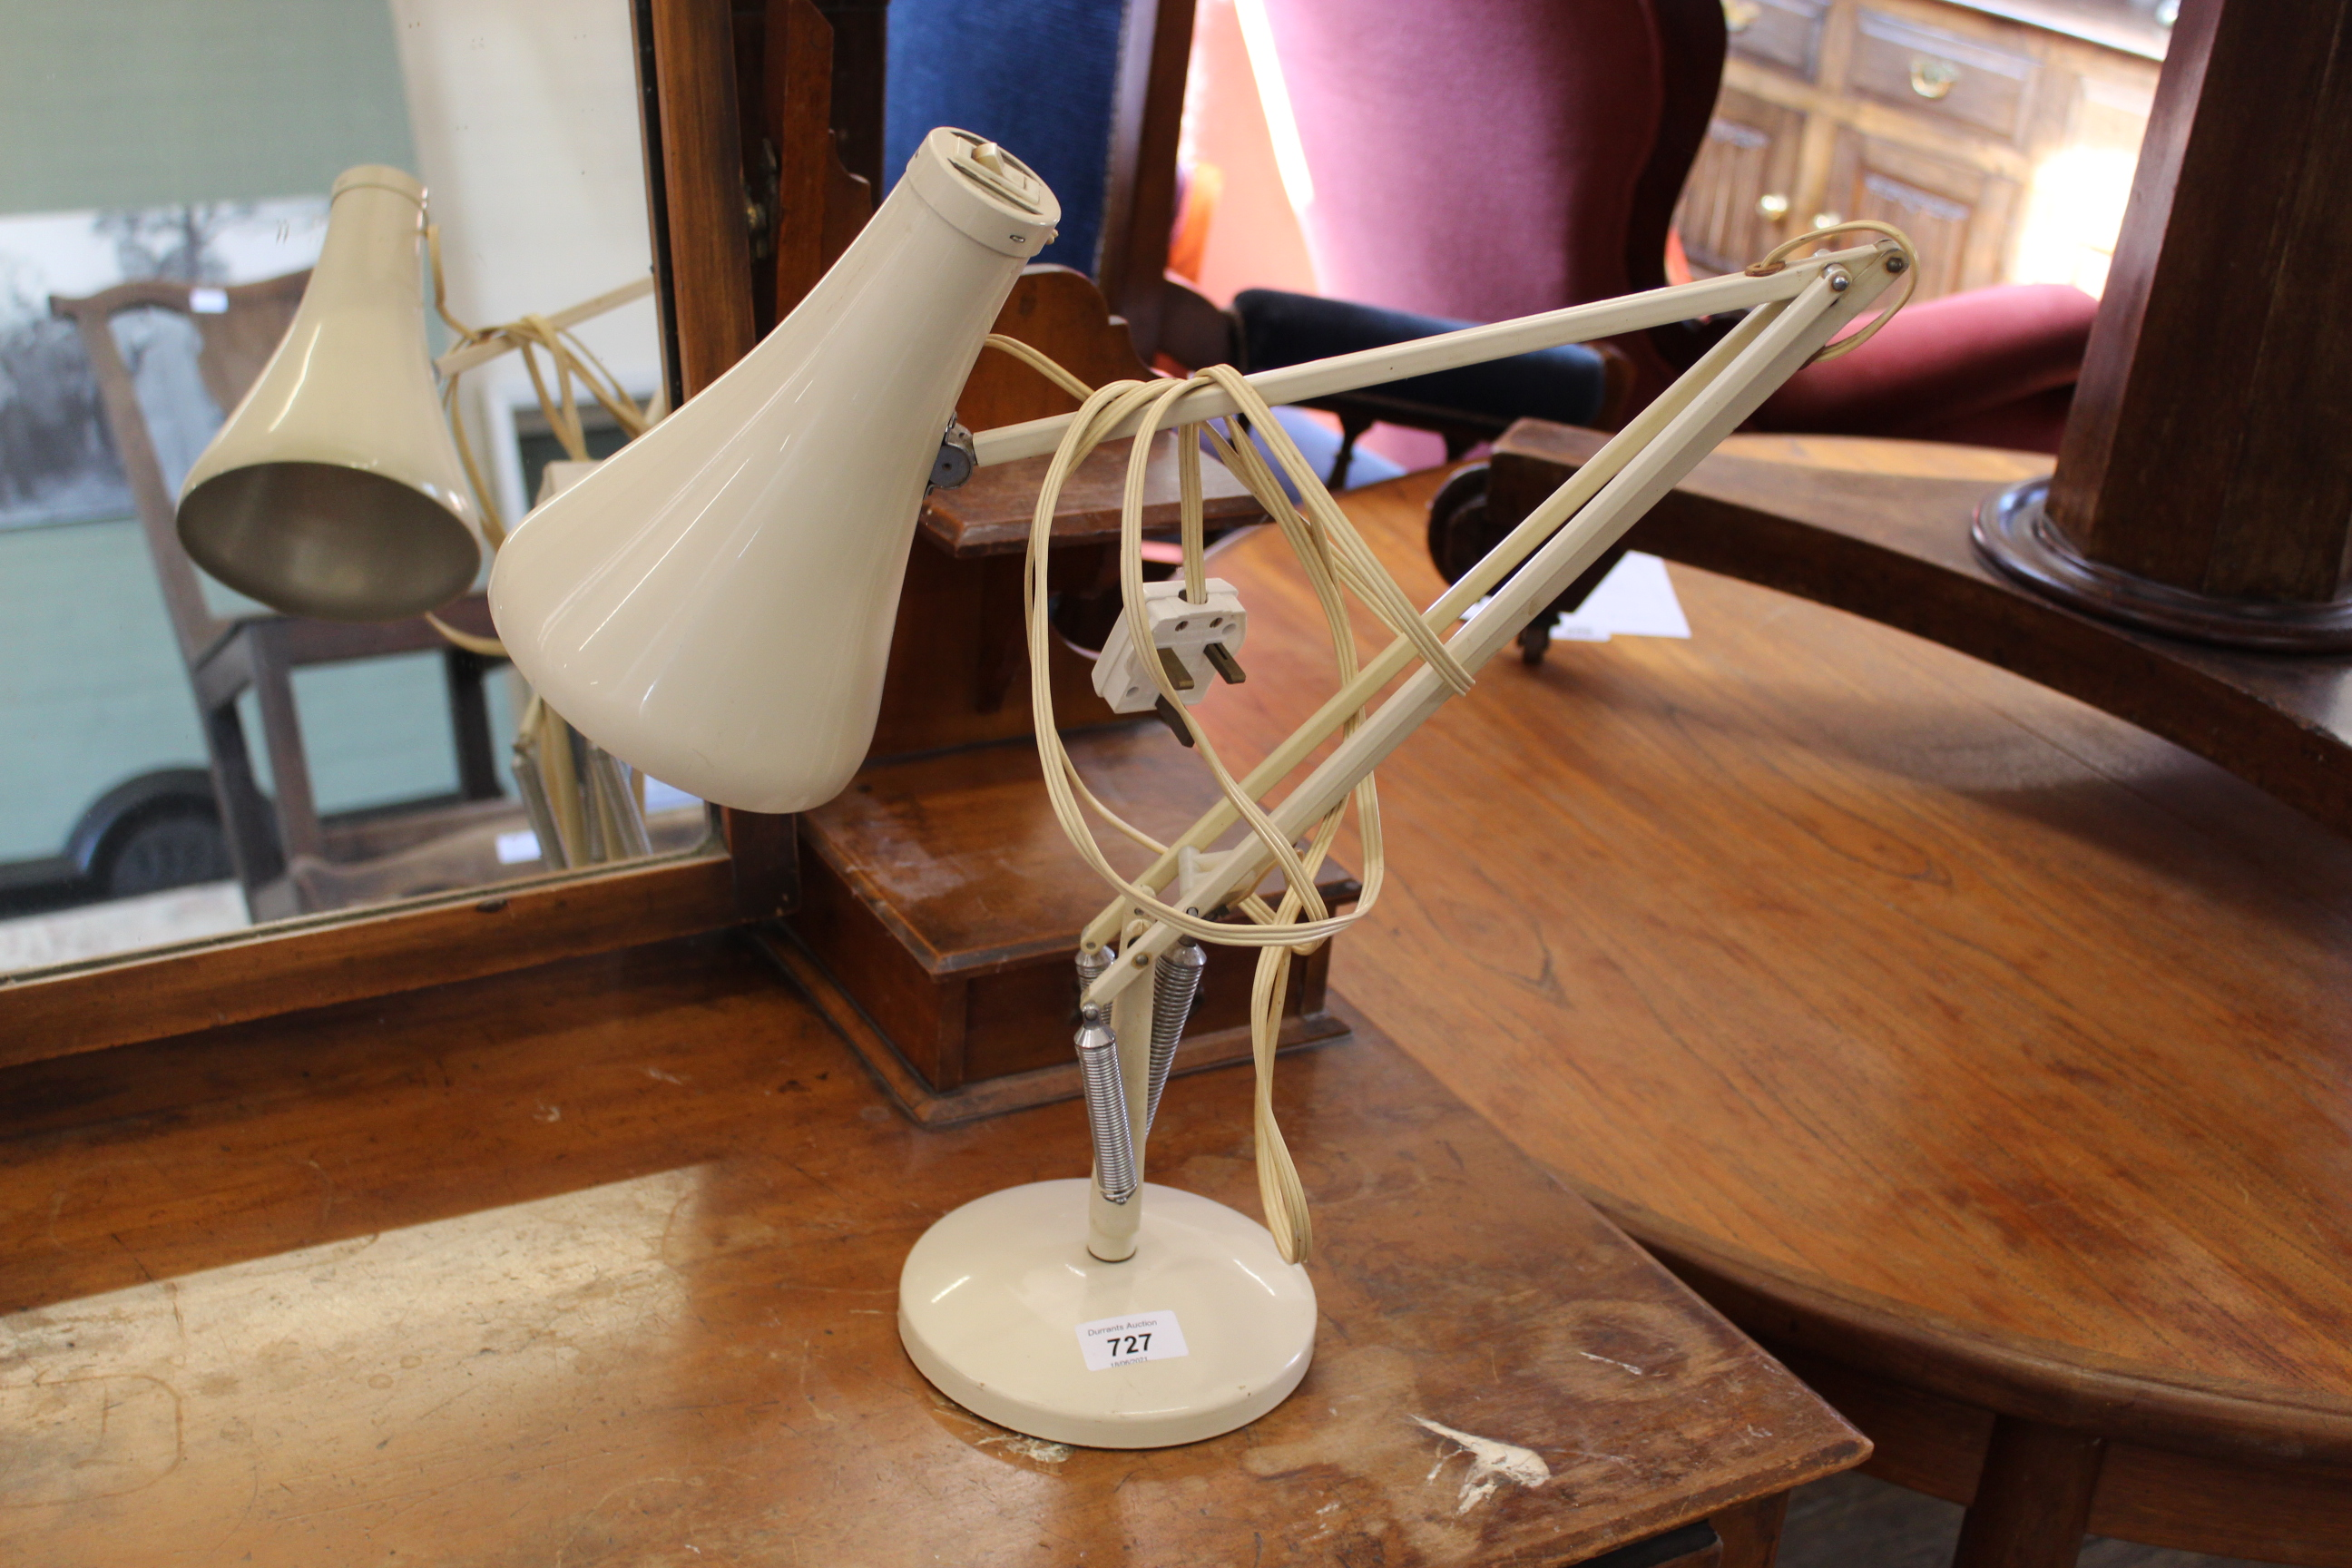 A vintage cream desk lamp by Anglepoise